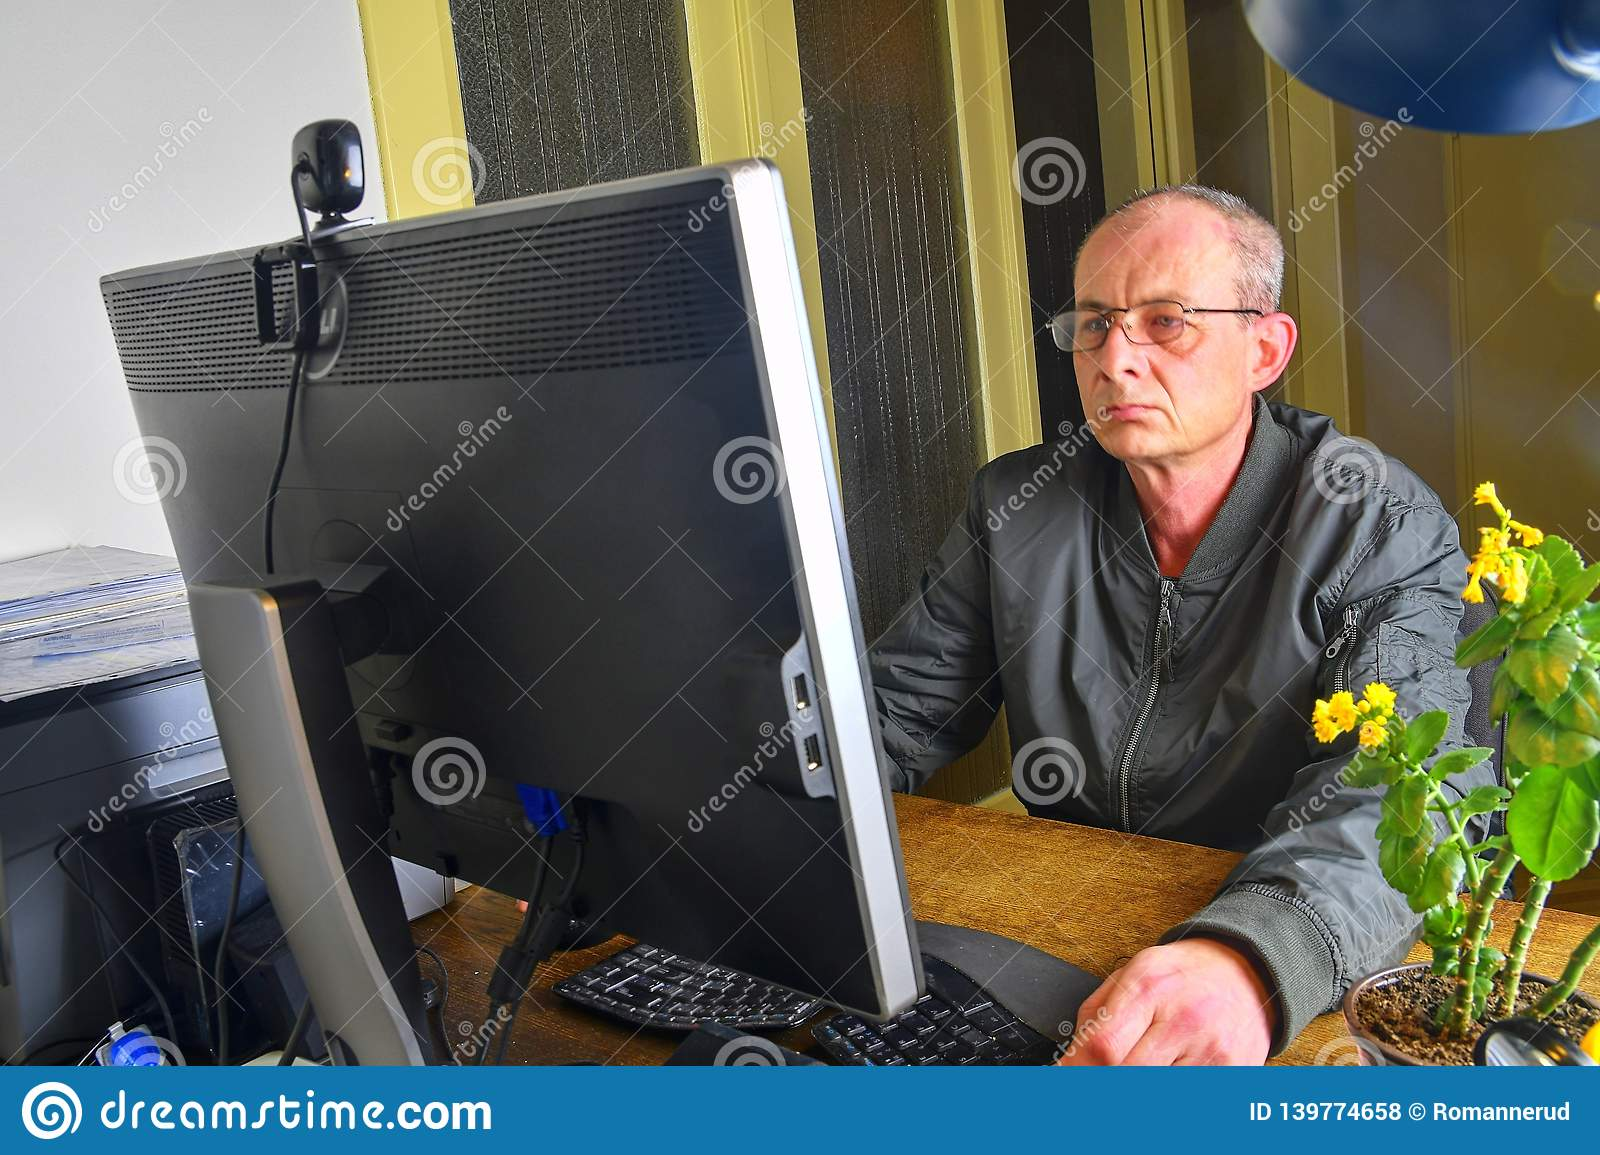 Middle aged man with glasses sitting at desk. Mature man using personal computer. Senior concept